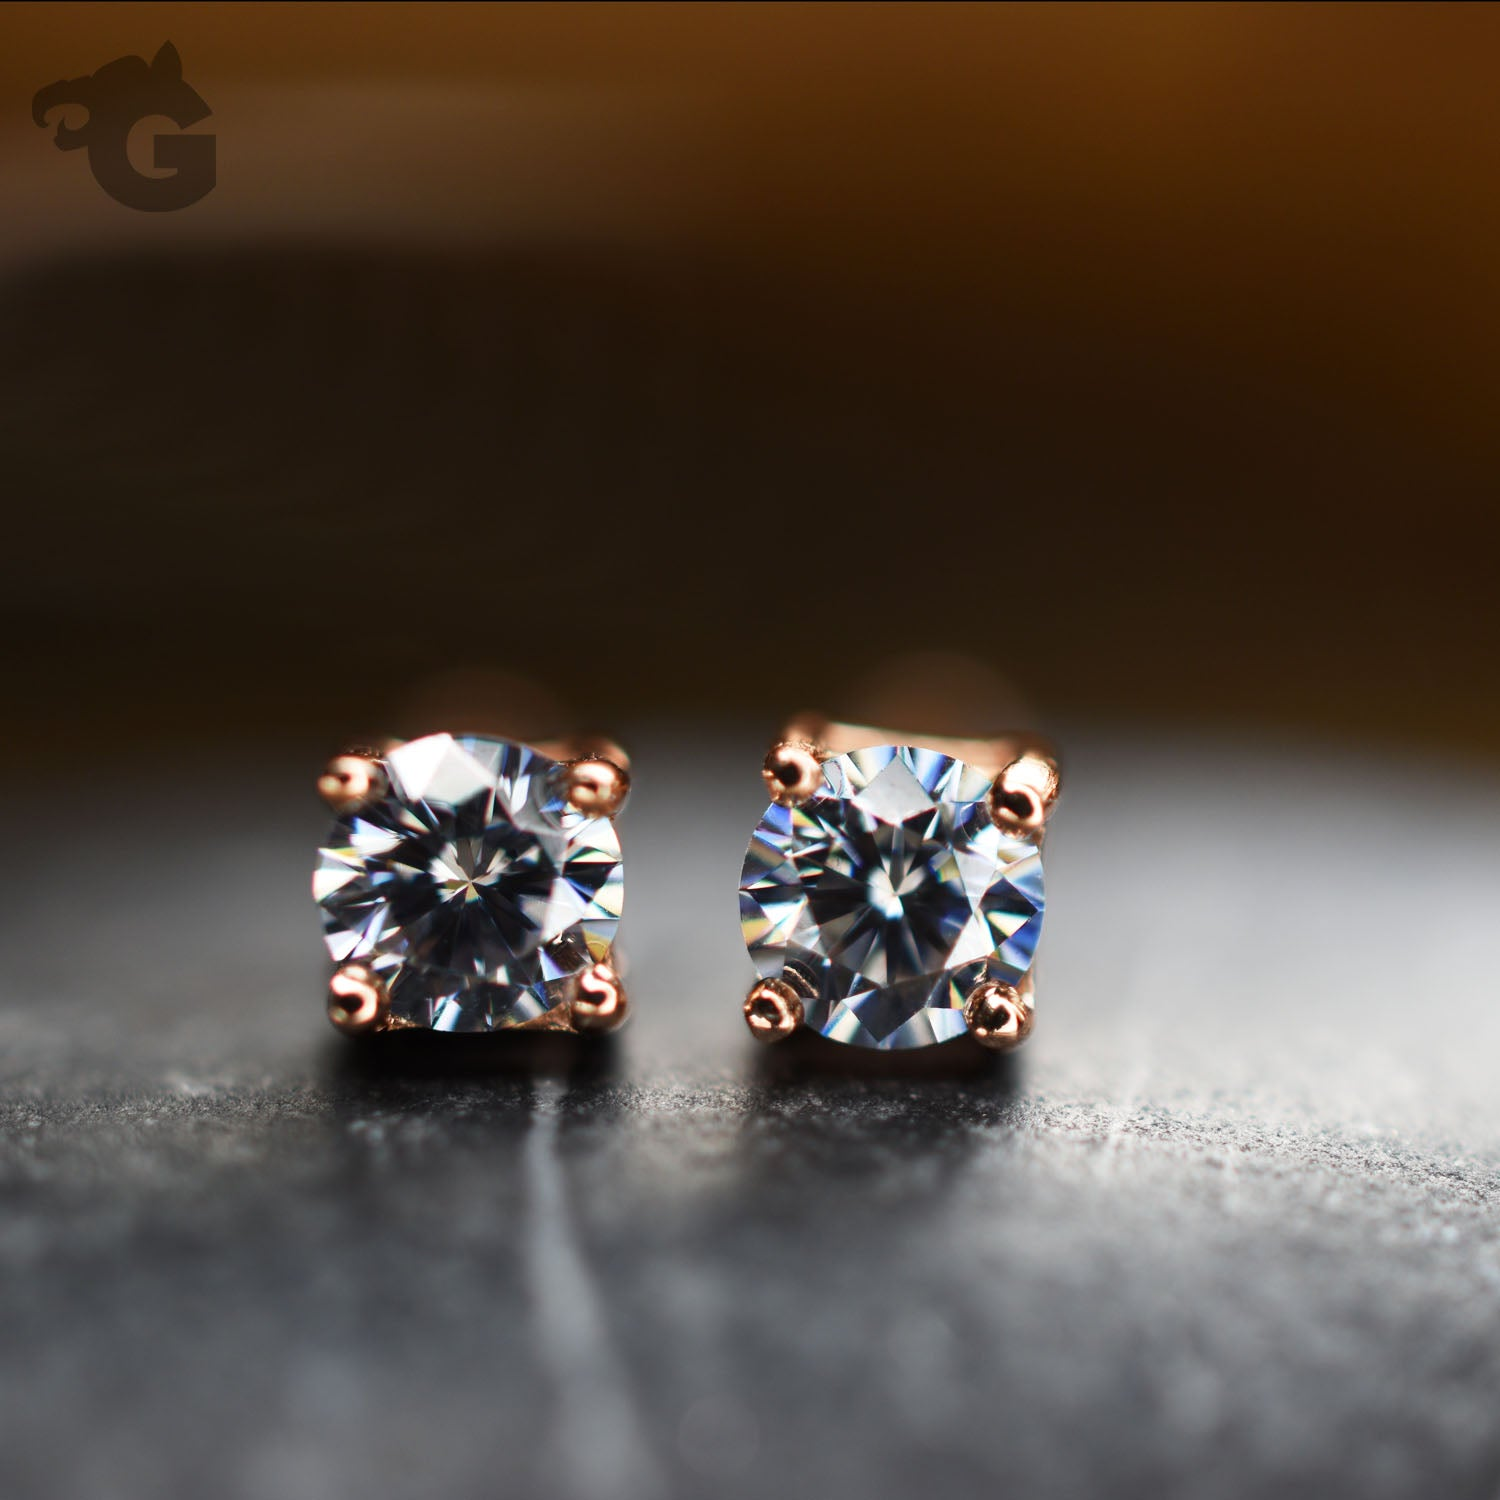 Moissanite diamond jewelry gray earring studs 3 mm 18K rose gold overlay - Glermes.com